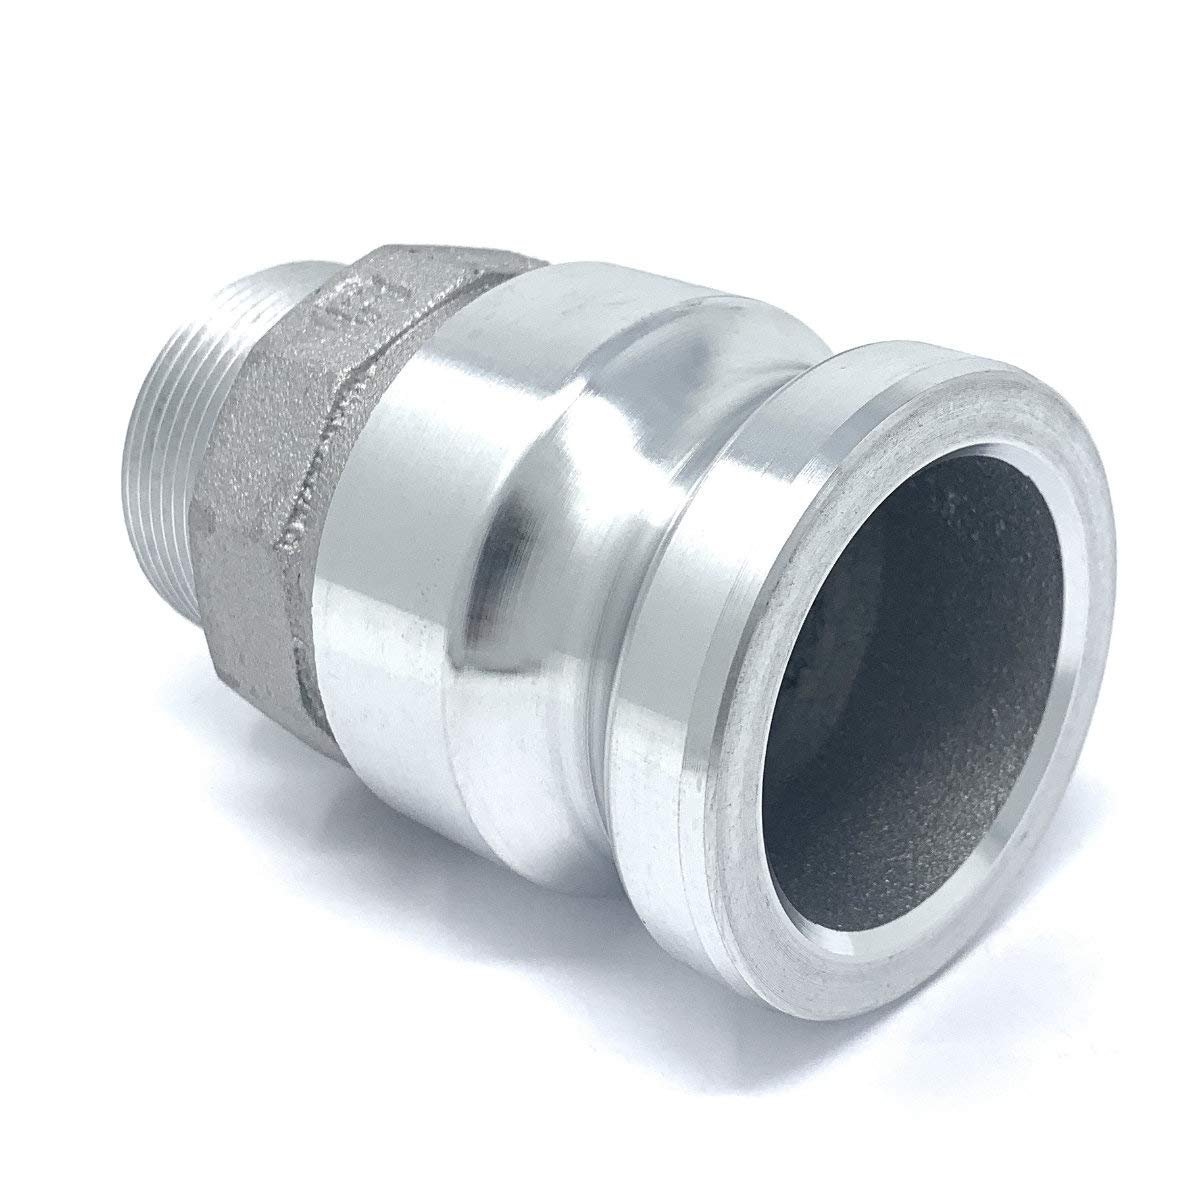 Gloxco Aluminum Type F Cam and Groove Fitting 4 Male Camlock Adapter x 4 Male NPT CAM-40-F-AL